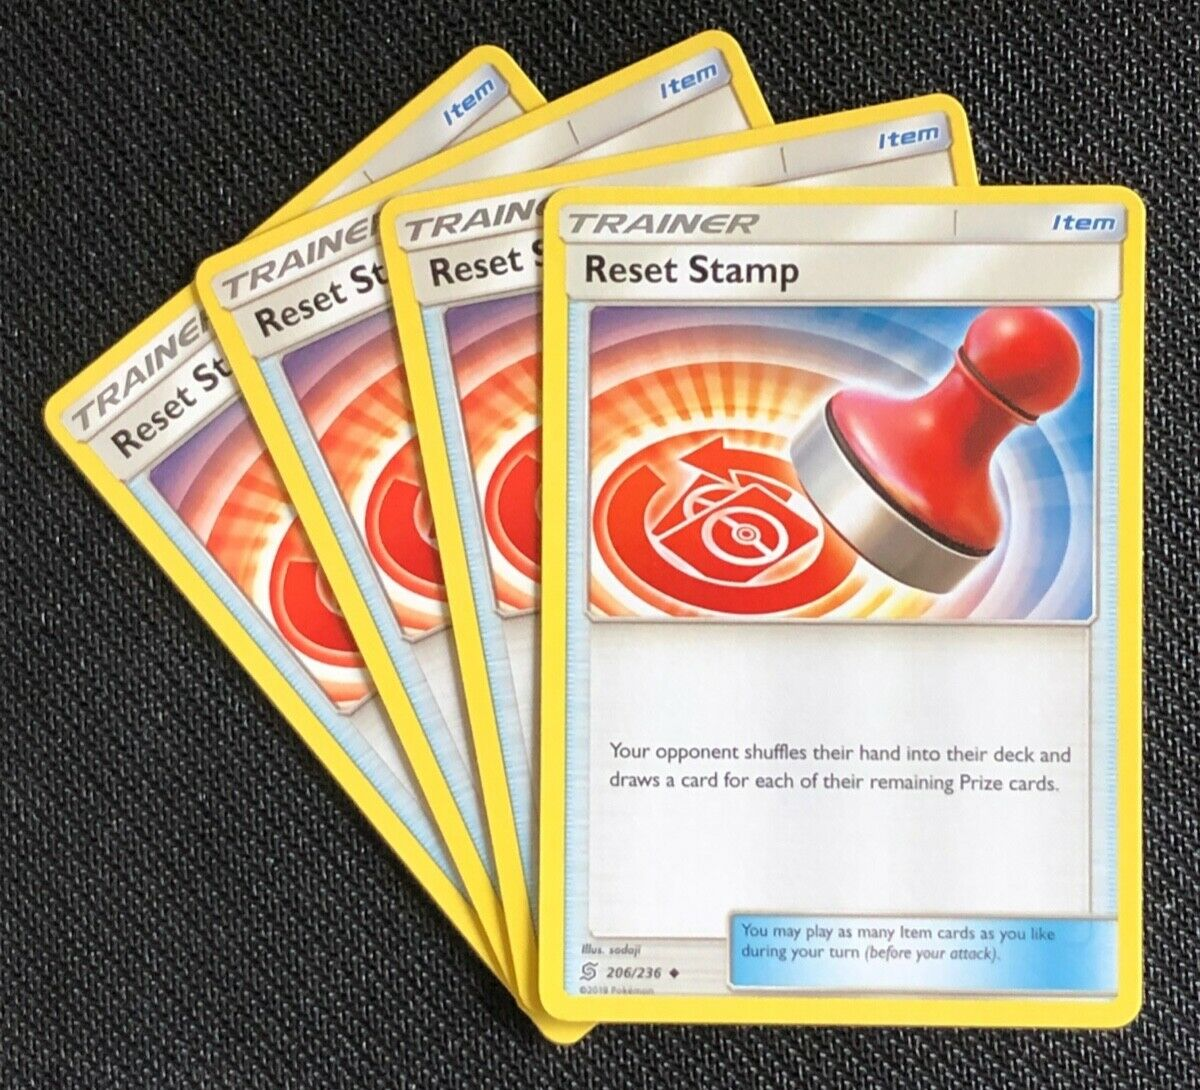 Pokemon Card Rev Holo Reset Stamp 206//236 Inc Free Card Deal